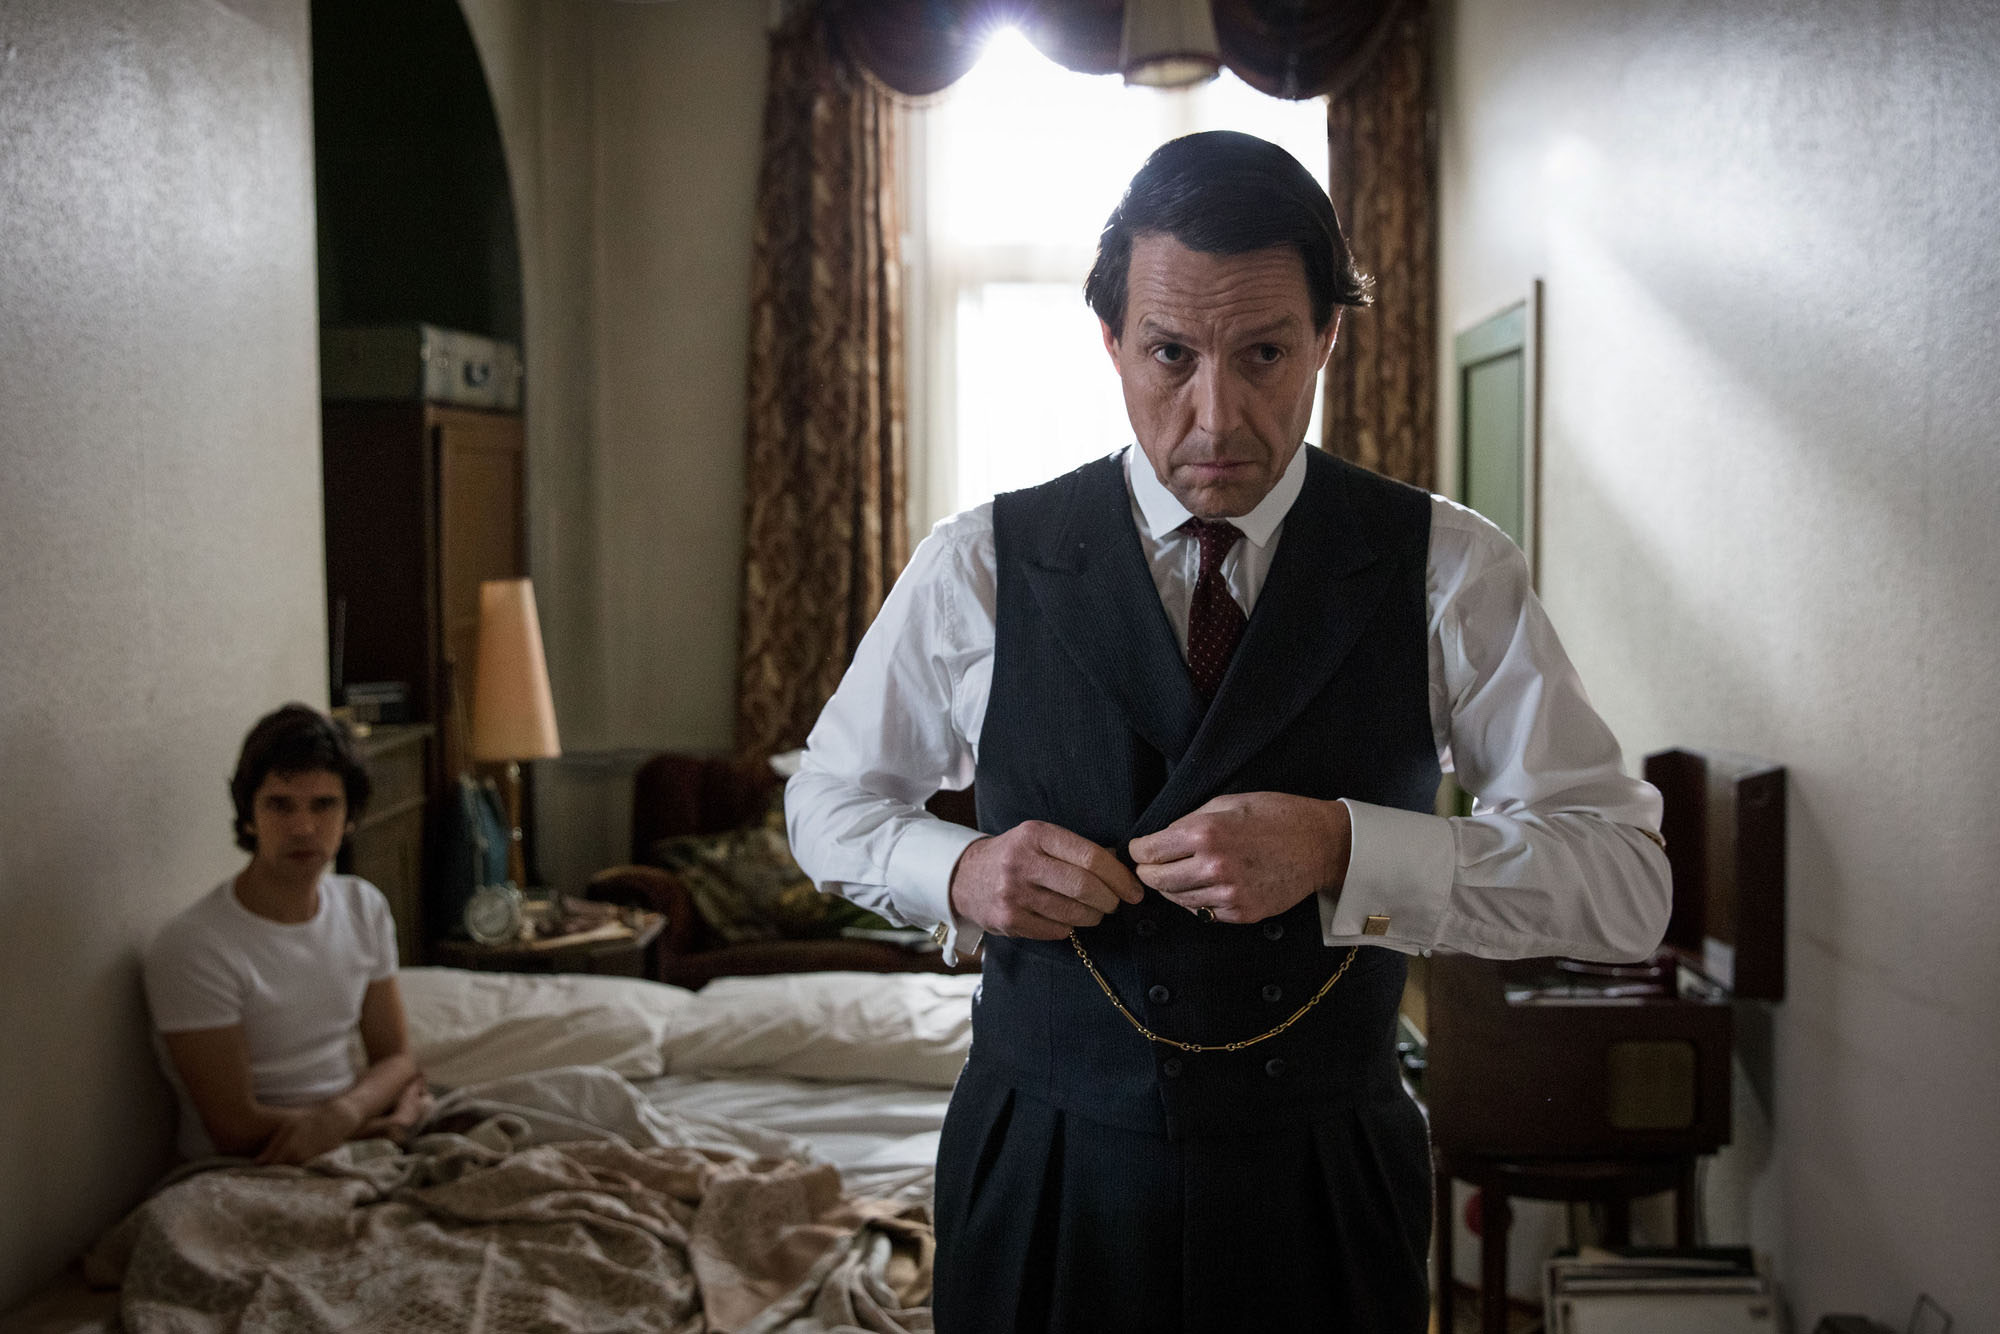 How A Very English Scandal spins sensationalism into empathy